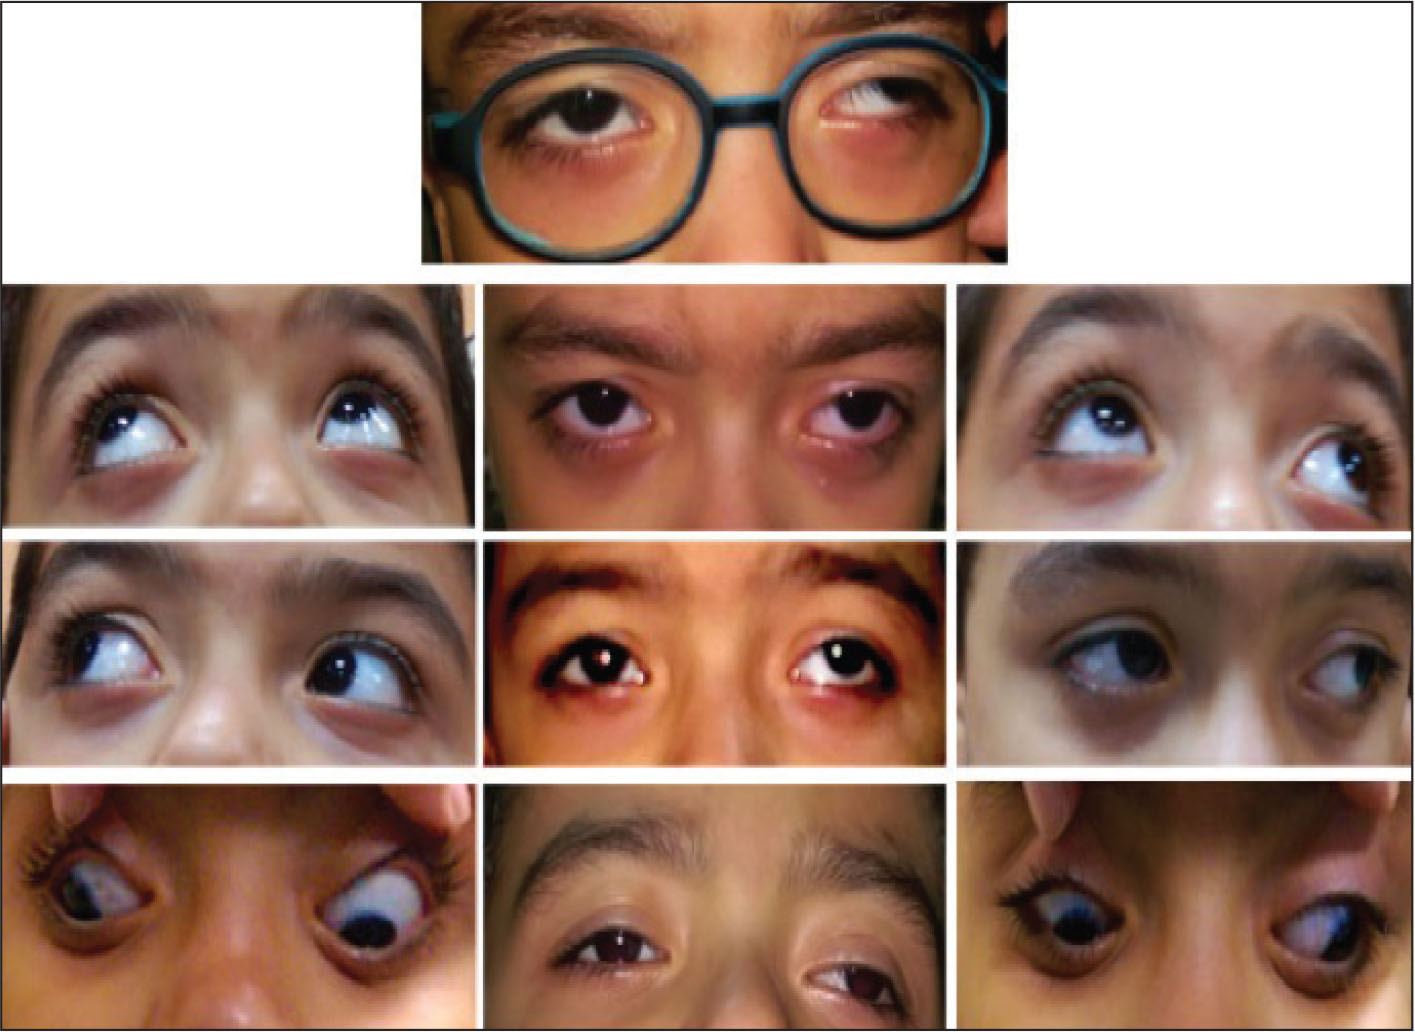 Preoperative composite showing exotropia, dissociated vertical deviation with normally acting inferior oblique muscles, A-pattern deviation, and bilateral superior oblique overaction.